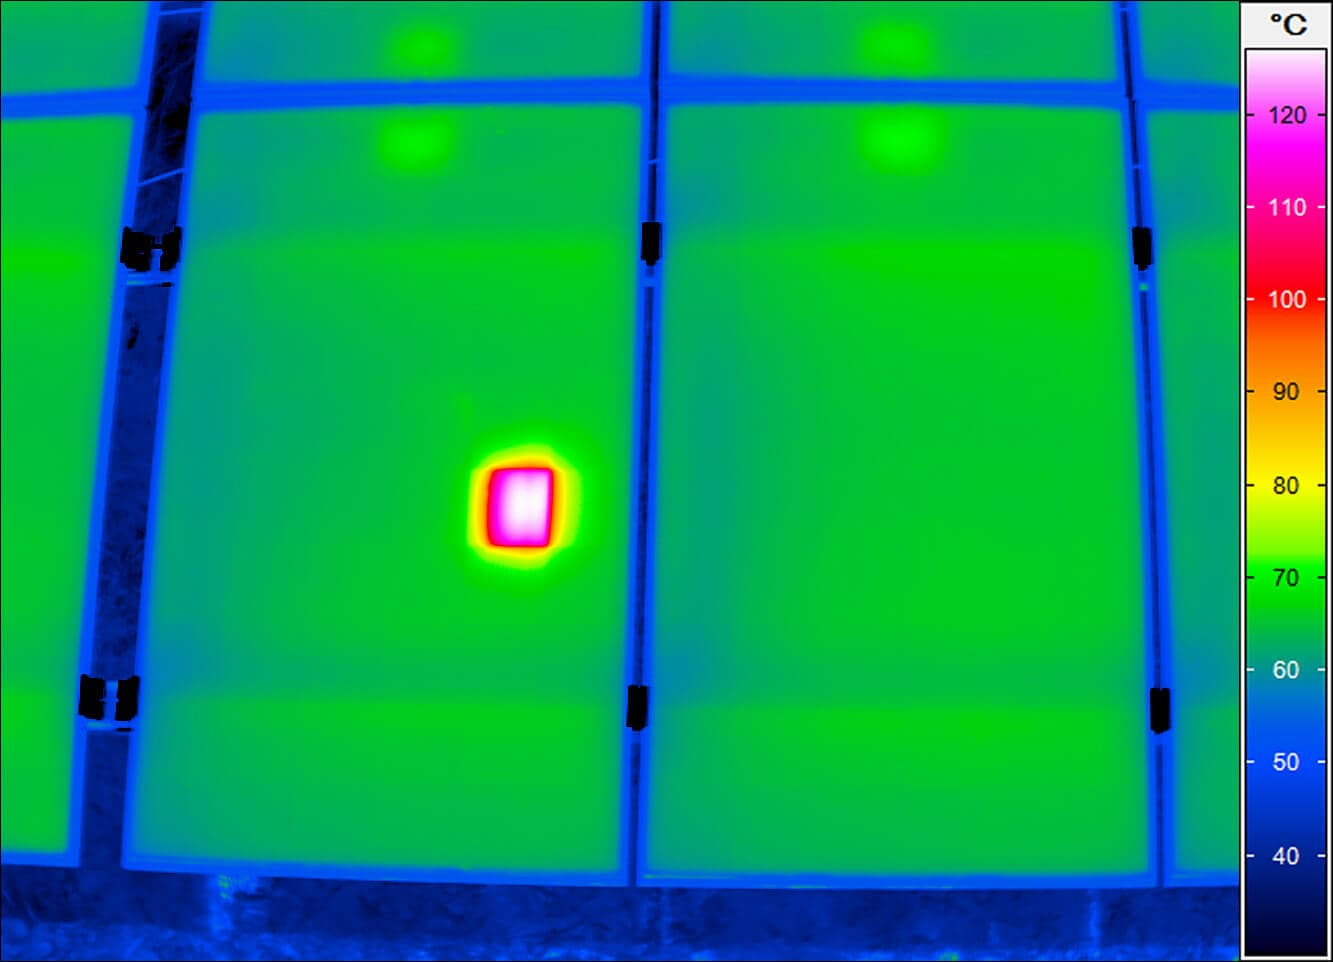 Photovoltaic thermal imaging shows cell failures